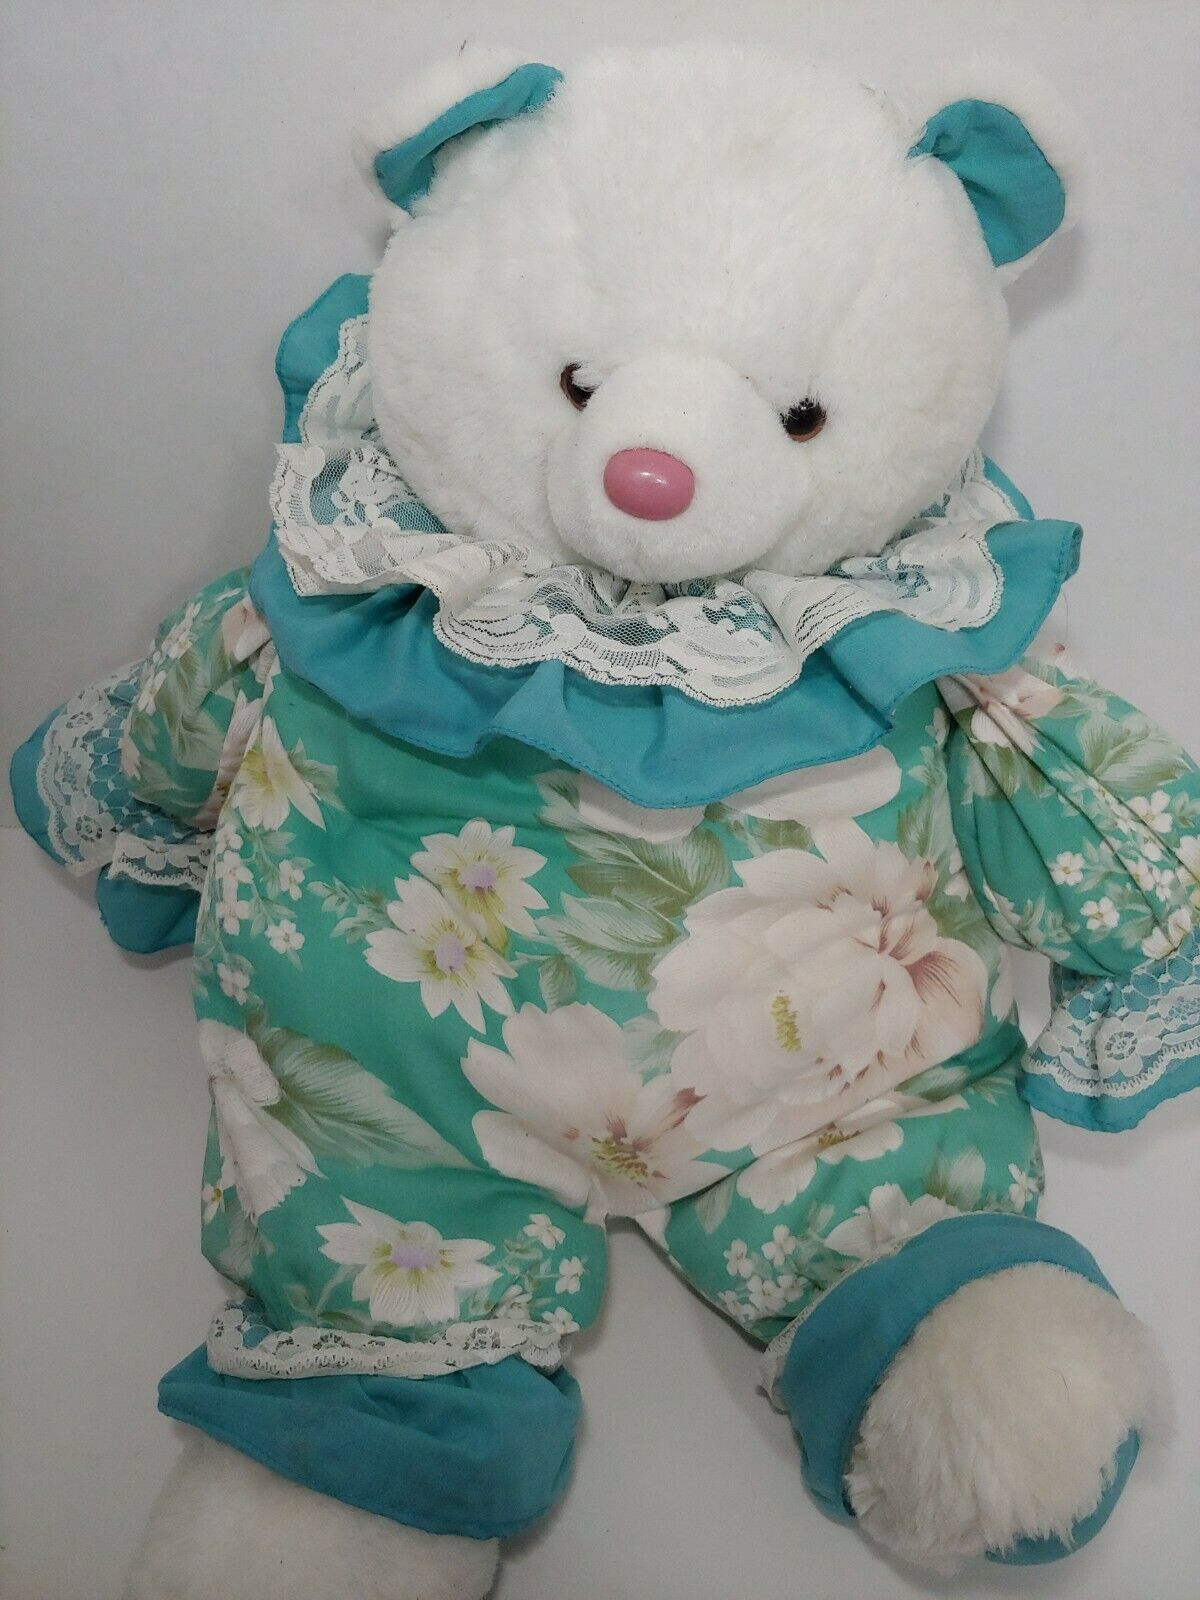 Enesco Plush white teddy bear green floral flowers outfit lace collar pink nose